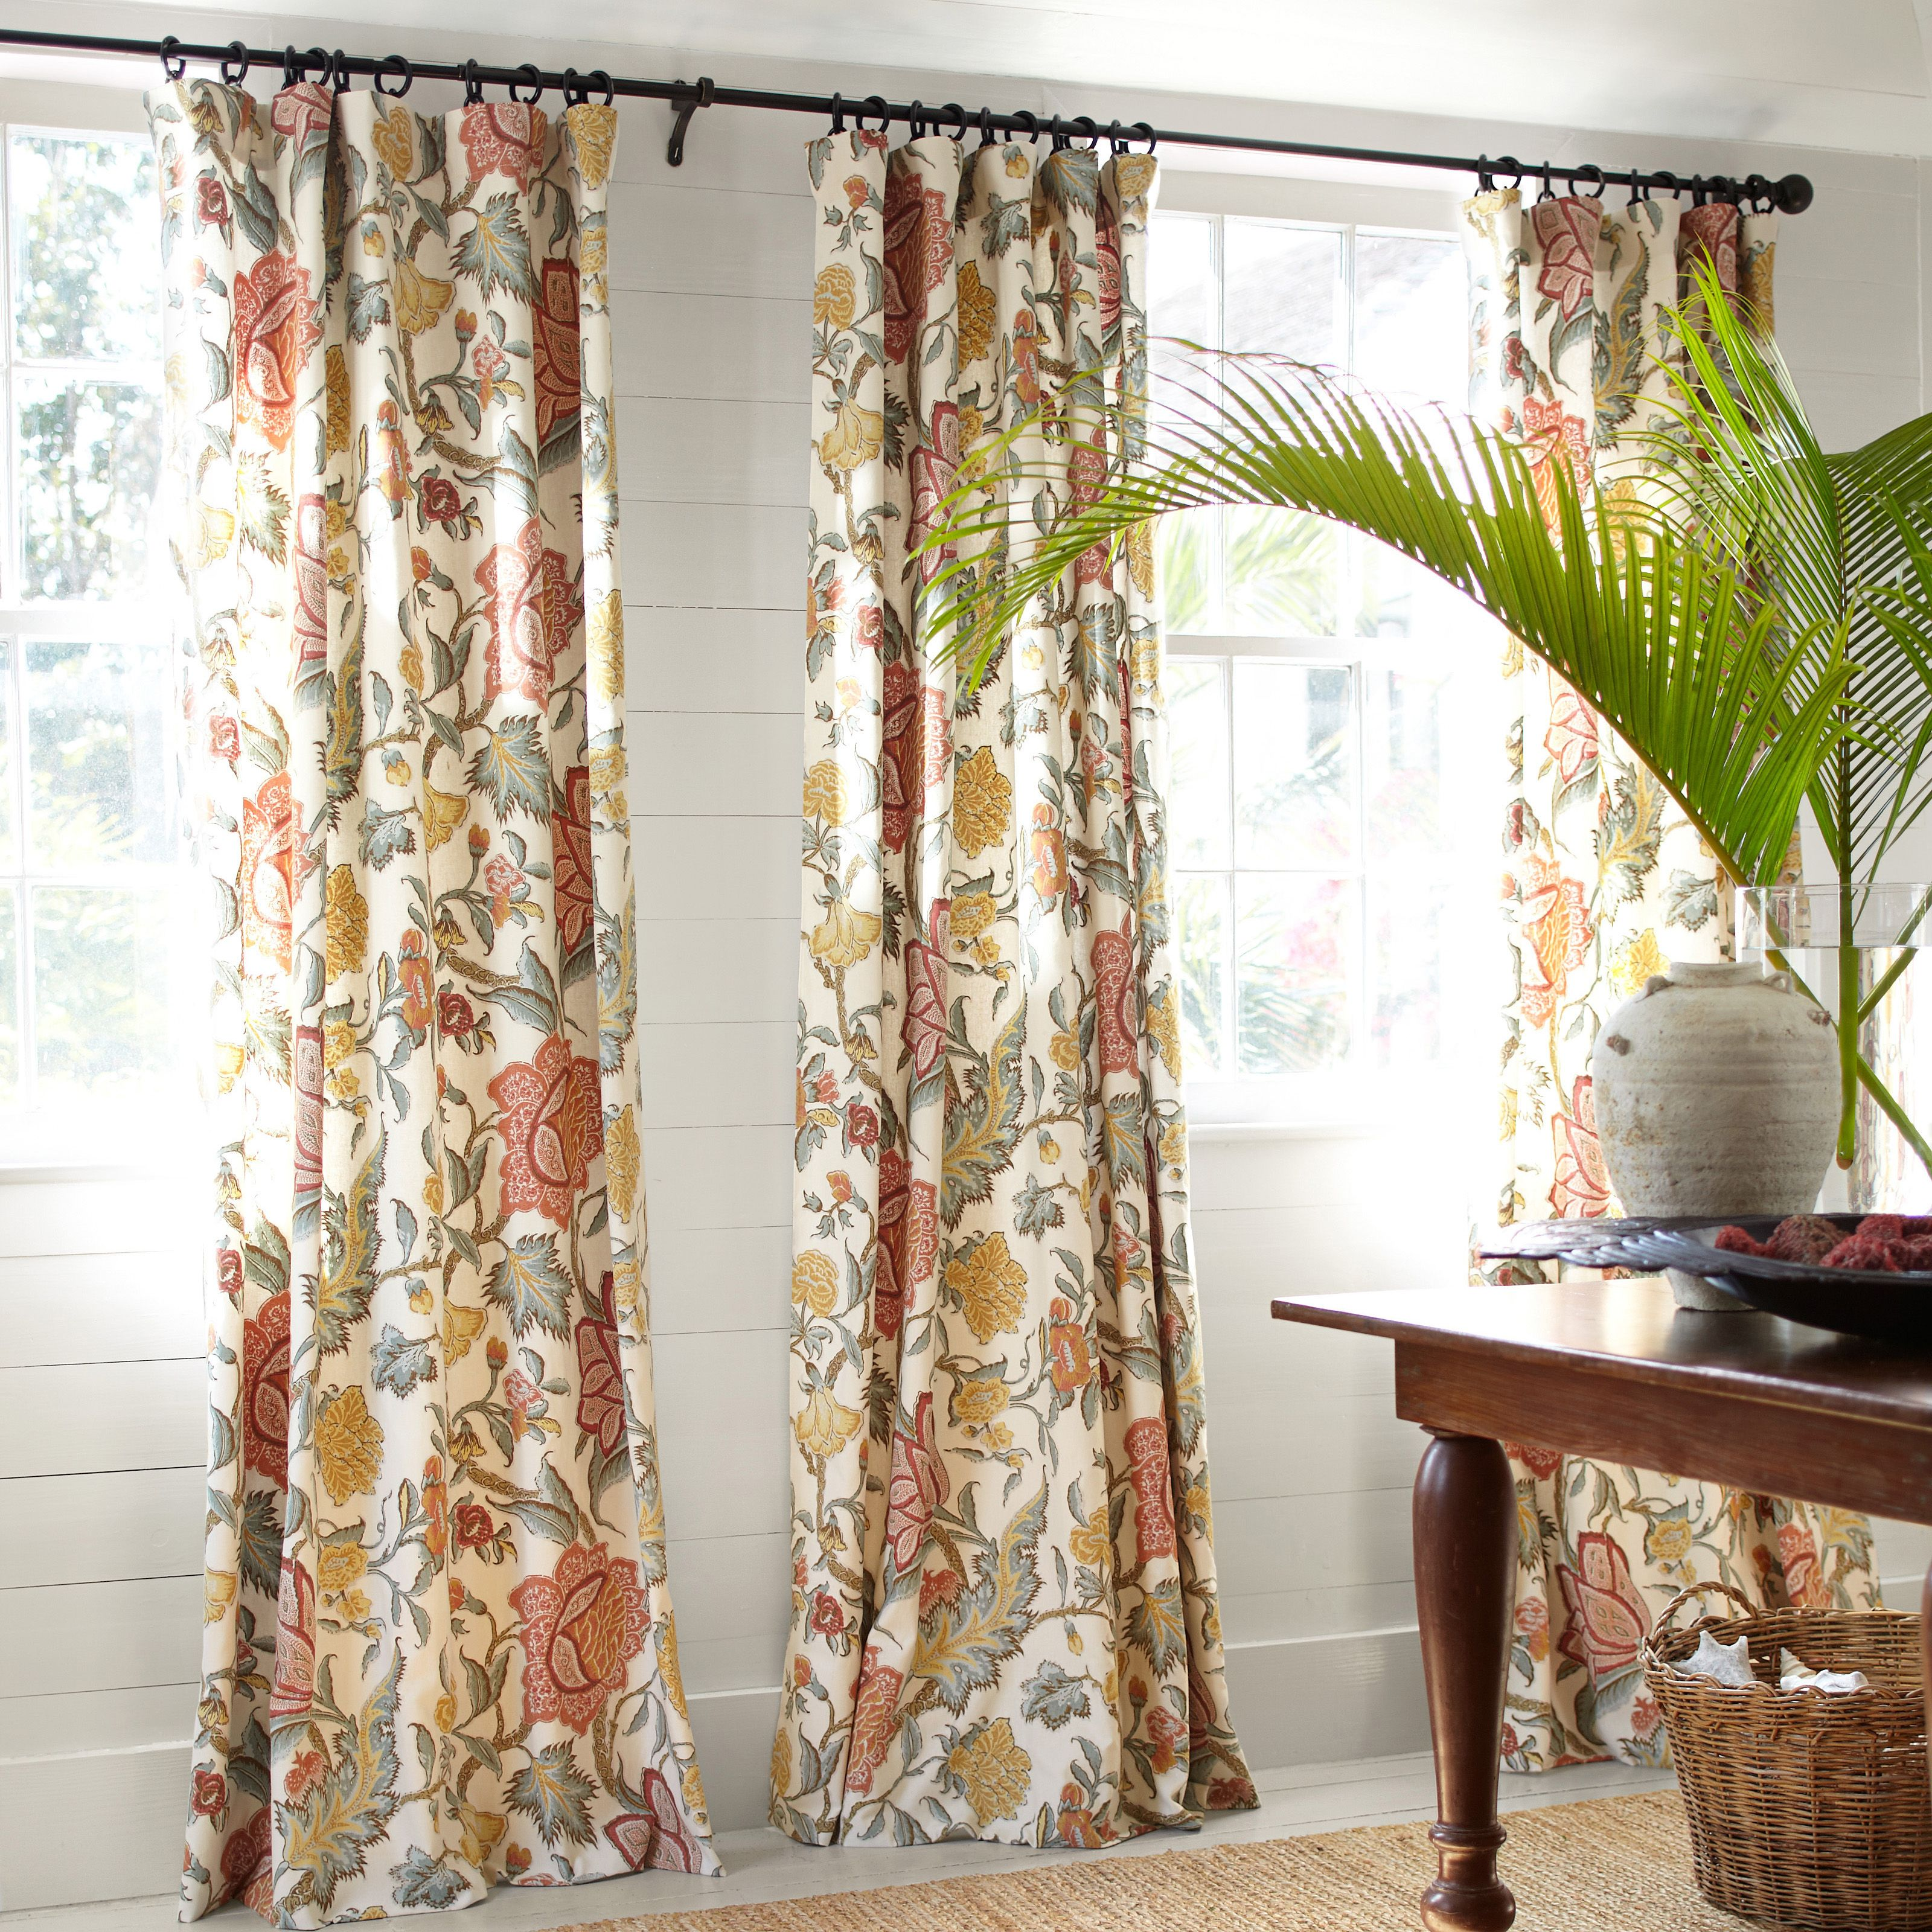 review curtain drapery pottery greenwake pertaining to curtains barns accesories home accessories diy rods sheer style barn